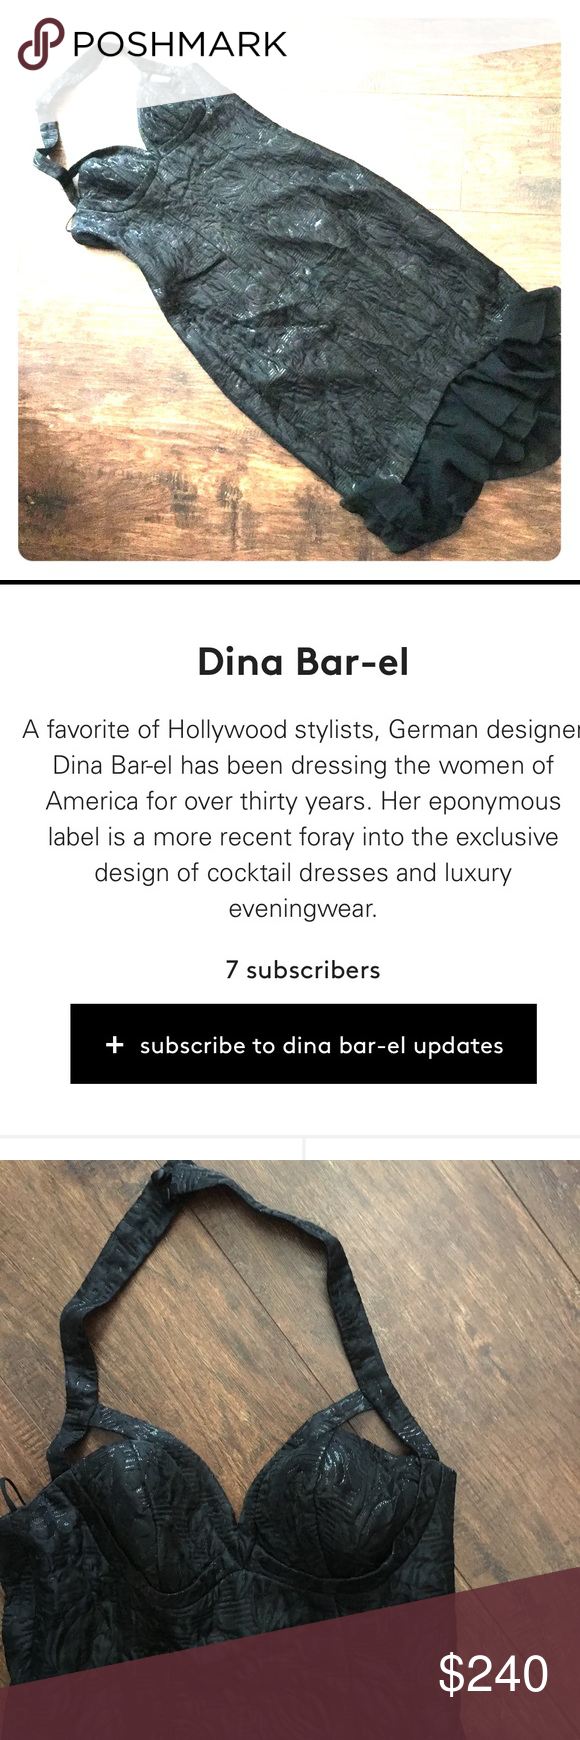 DINA BAR-EL NWT Wow! Figure hugging halter style designer dress! Tags still attached and in great condition! Black with a great ruffle detail at bottom hem! Happy to measure of anyone is serious and wants to know- ASK😉 Dina Bar-el Dresses Midi